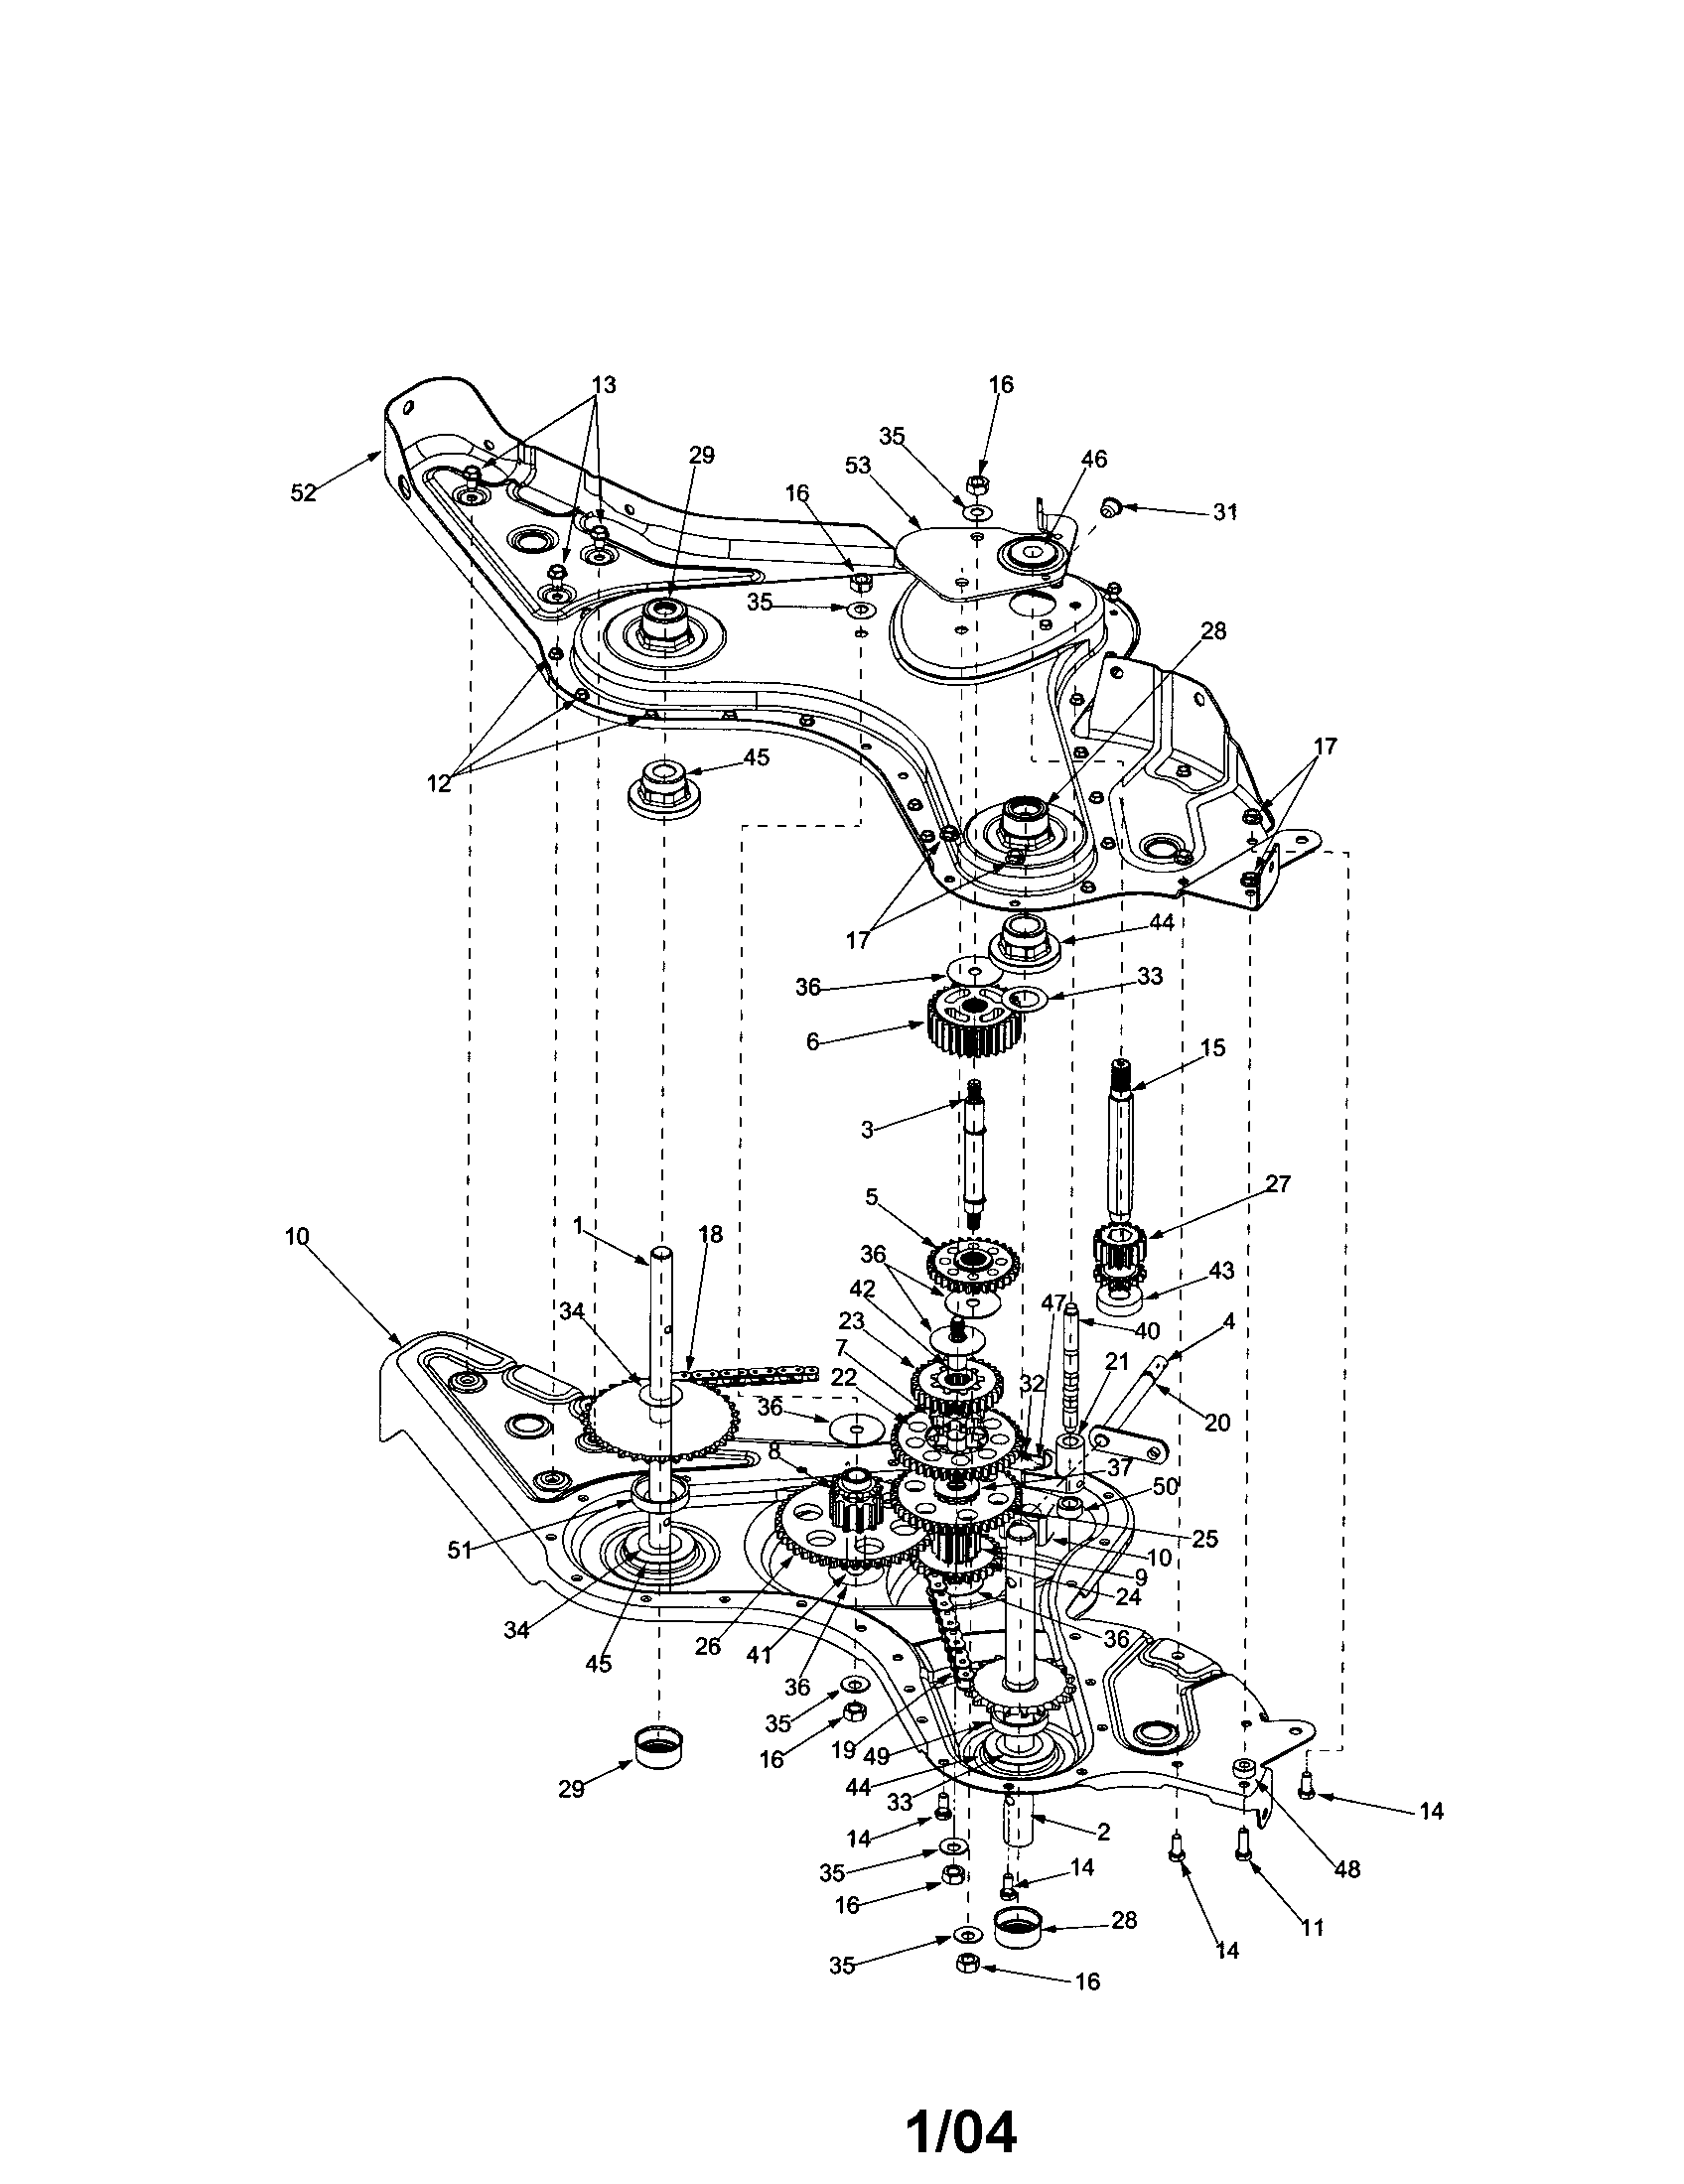 Mtd Rear Tine Tiller Diagram